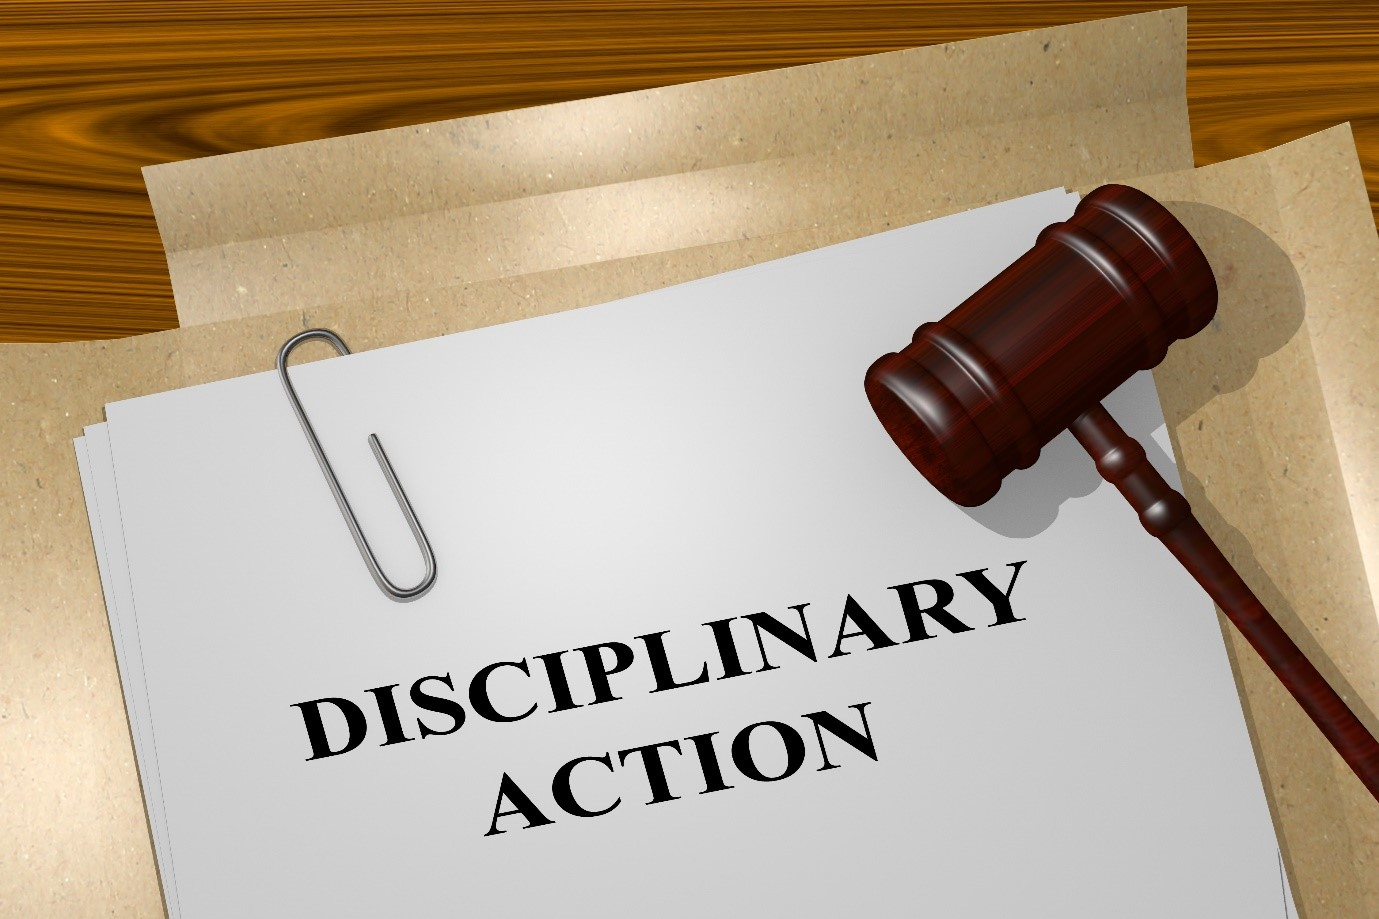 How To Conduct a Disciplinary Hearing At Work